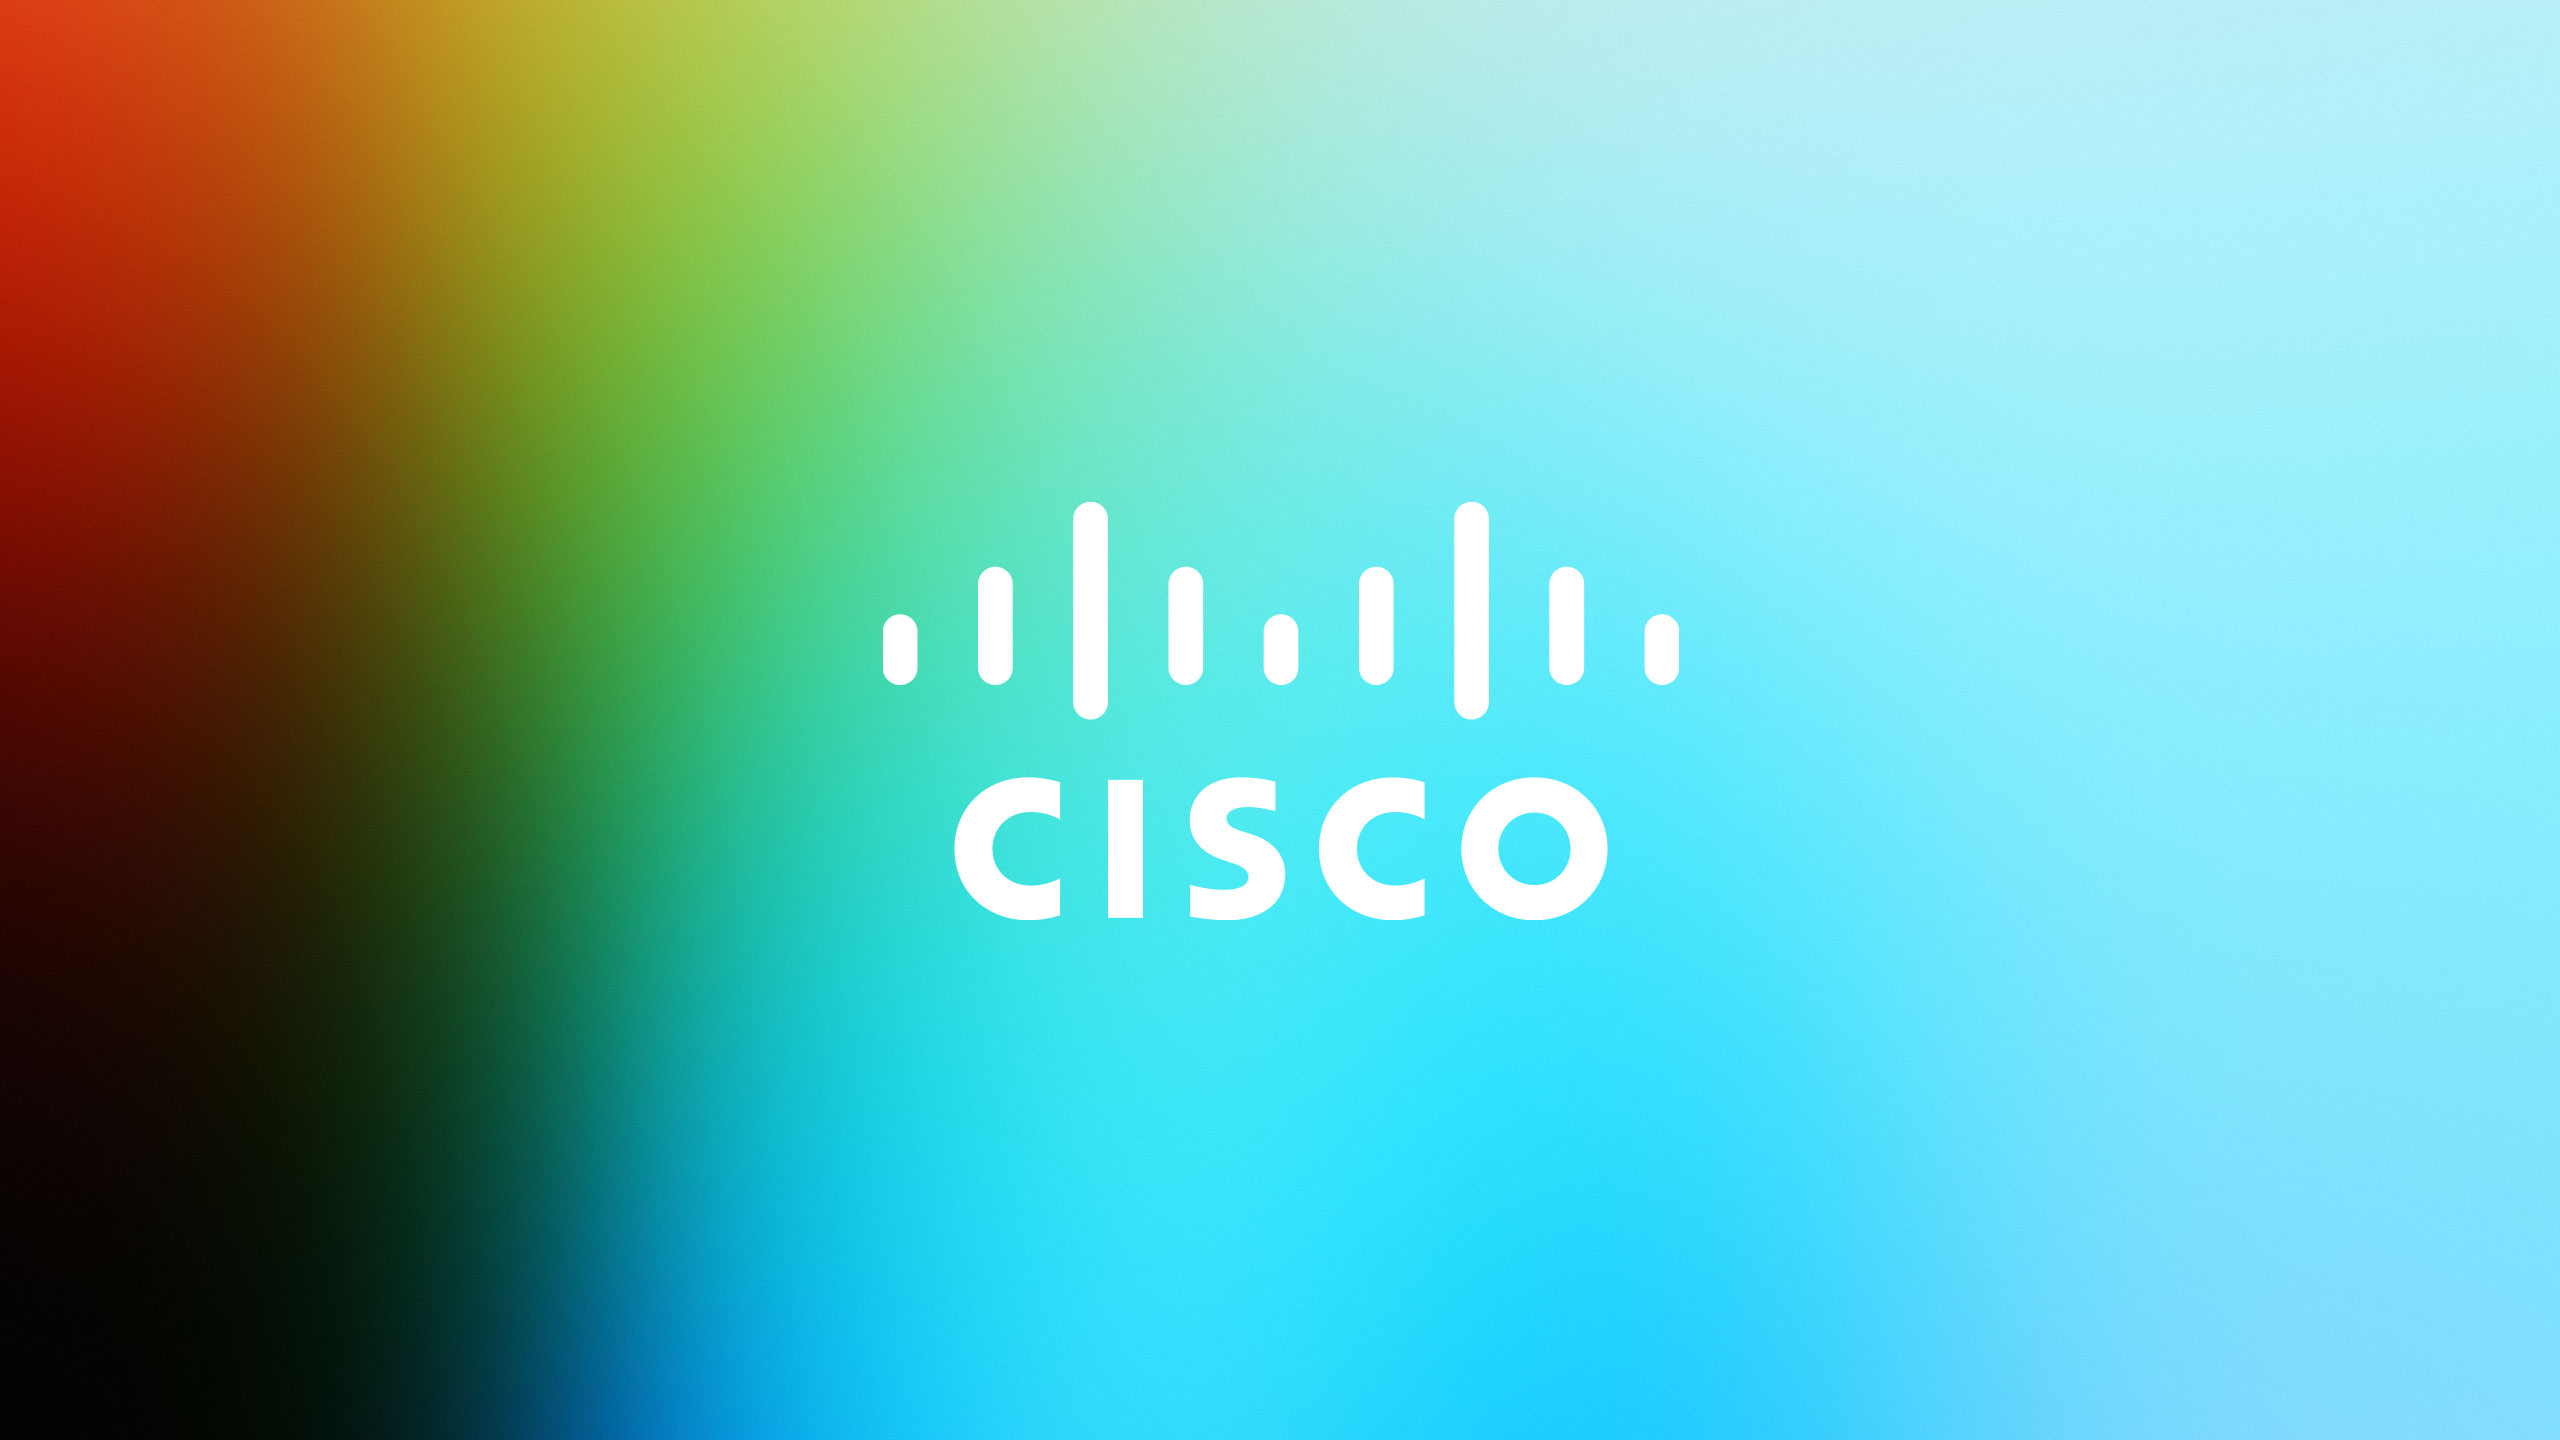 white Cisco logo on gradient texture background